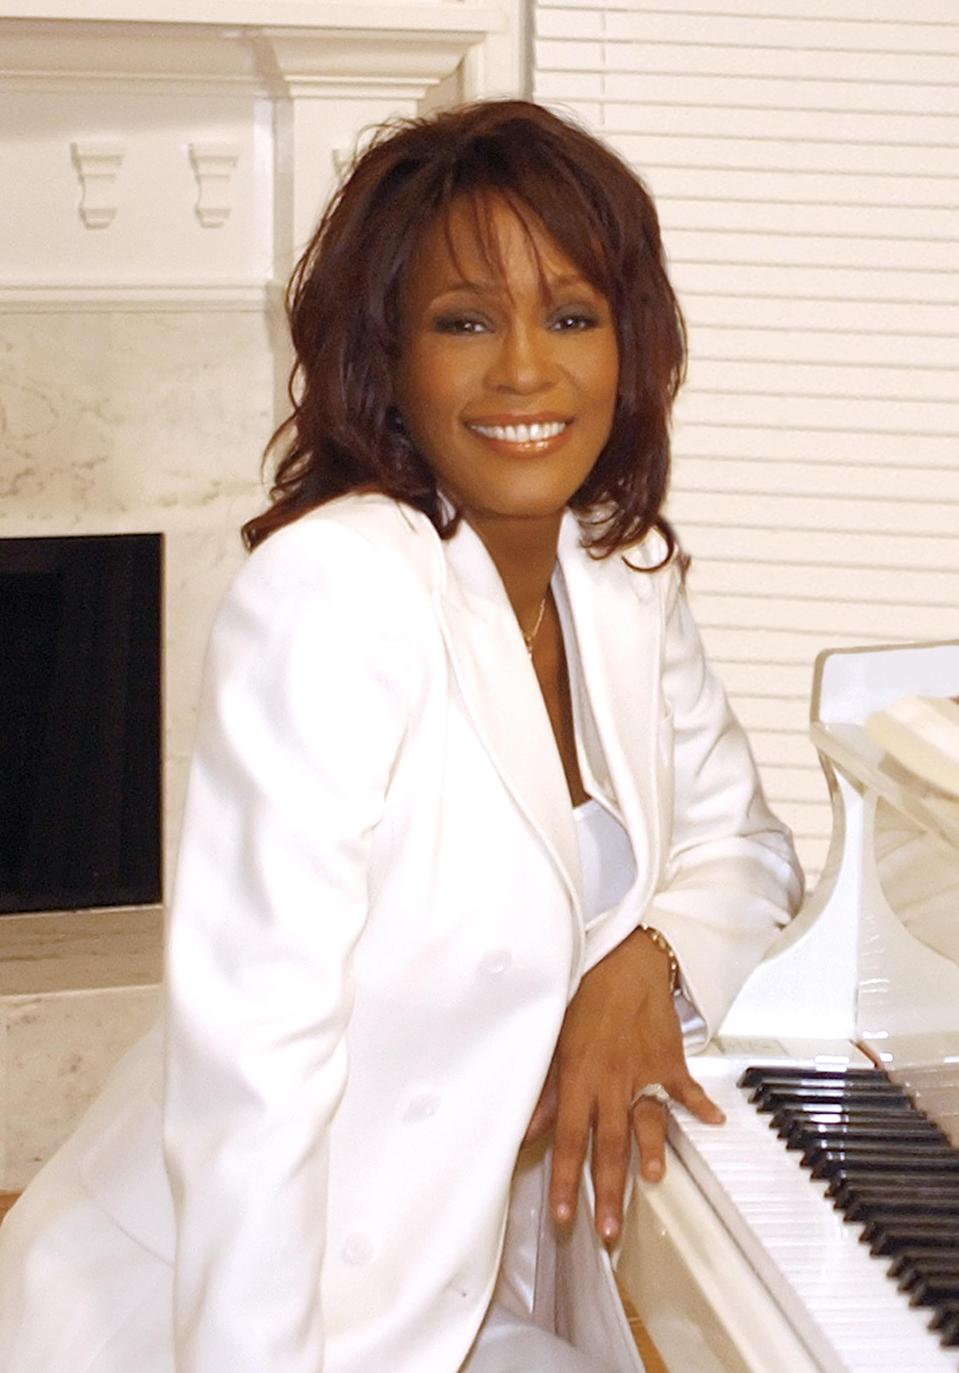 Whitney Houston, who grew up singing at her local church and kept religion as a focal point in her life, left behind a Bible in one her homes, and it's now on sale for close to $100,000. (Photo: Getty Images)